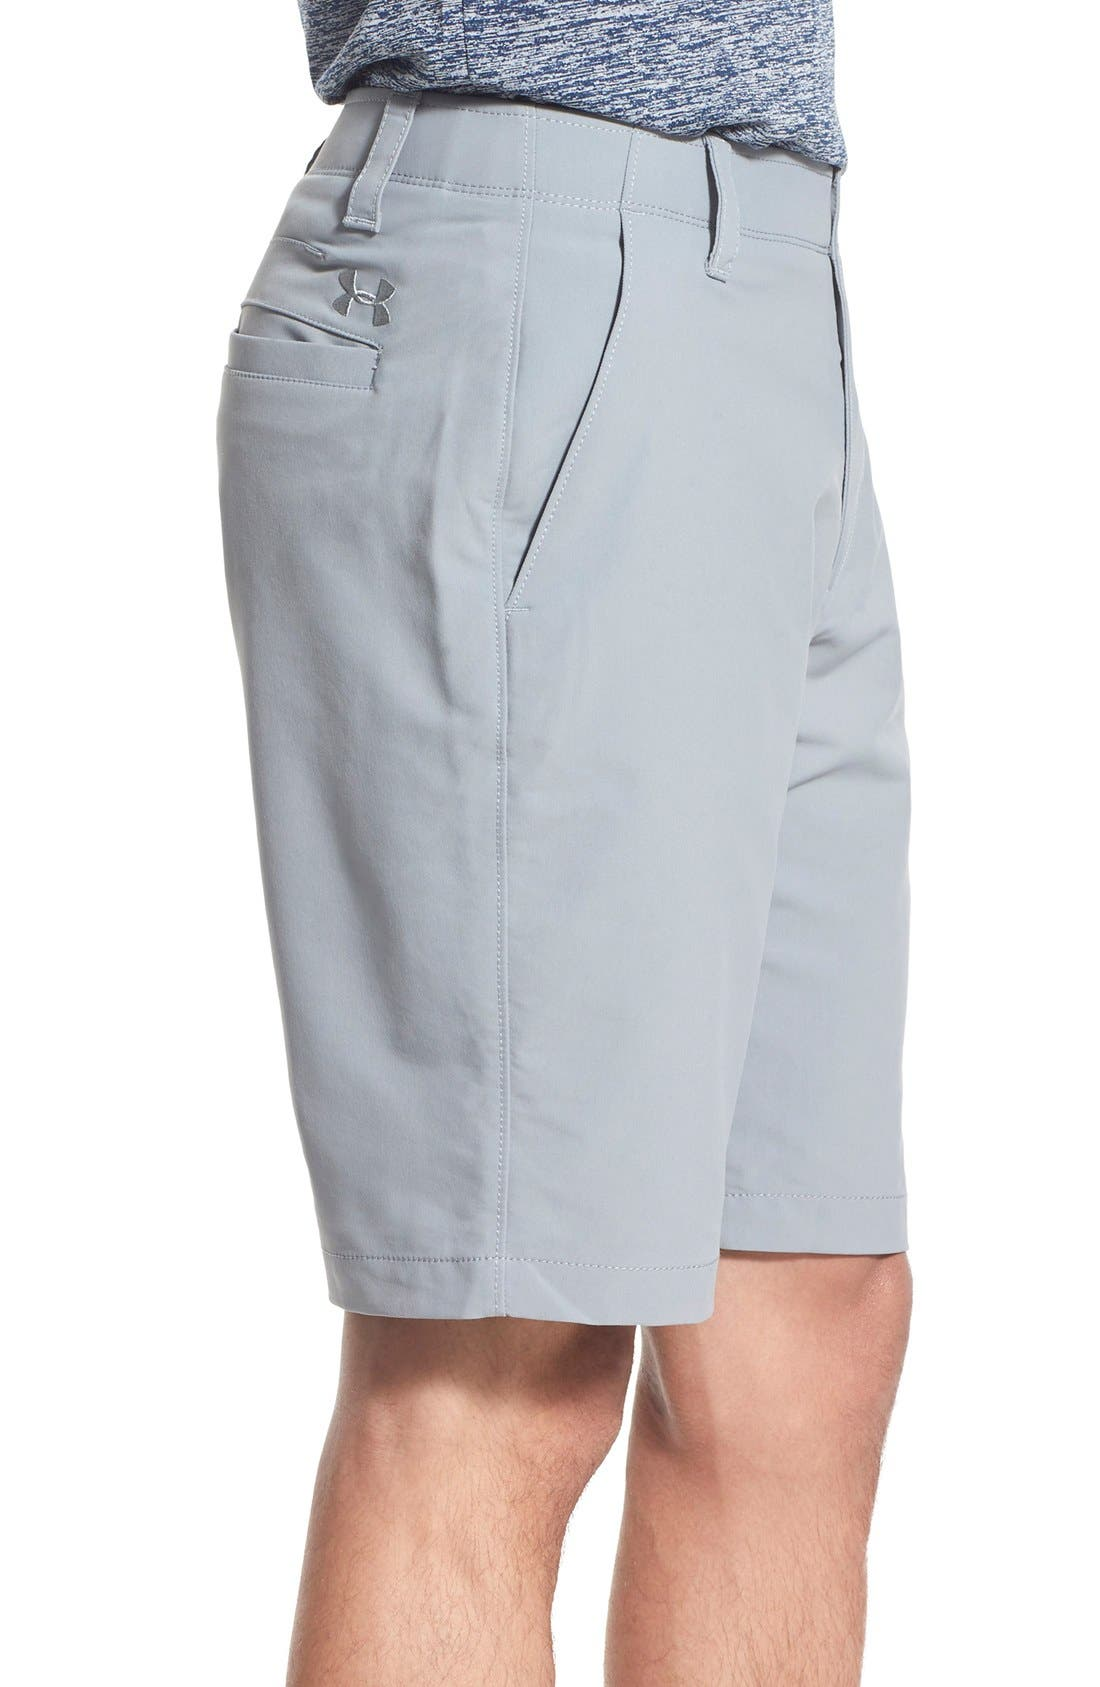 'Matchplay' Moisture Wicking Golf Shorts,                             Alternate thumbnail 2, color,                             035